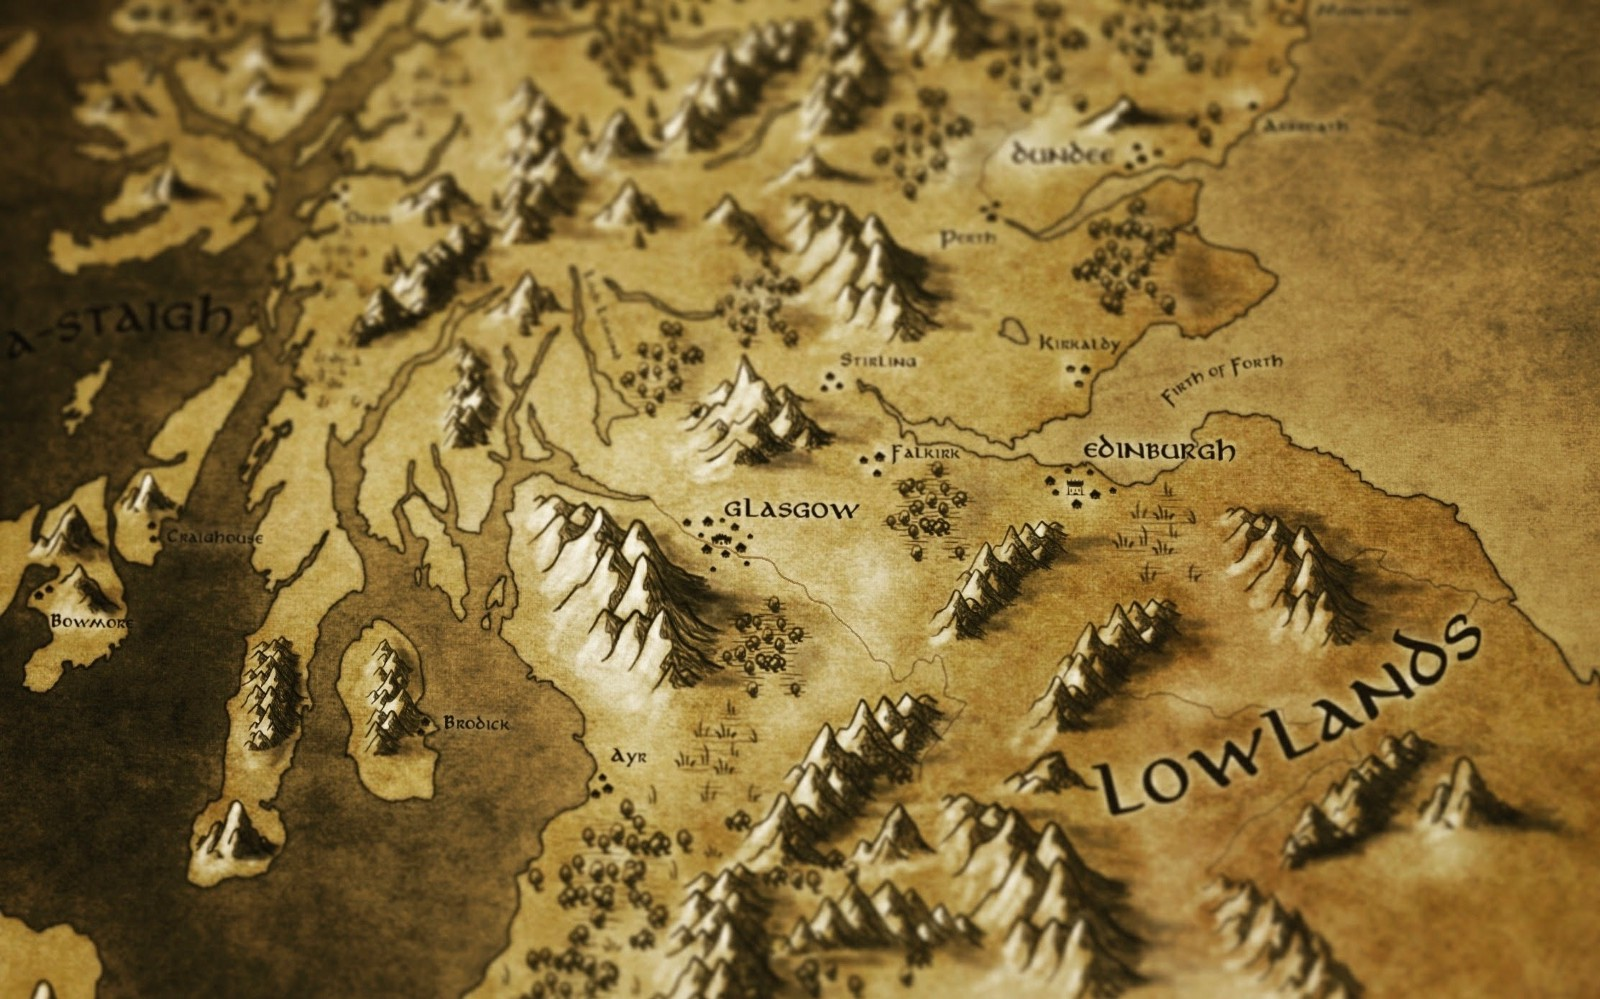 central belt of scotland in lord of the rings style